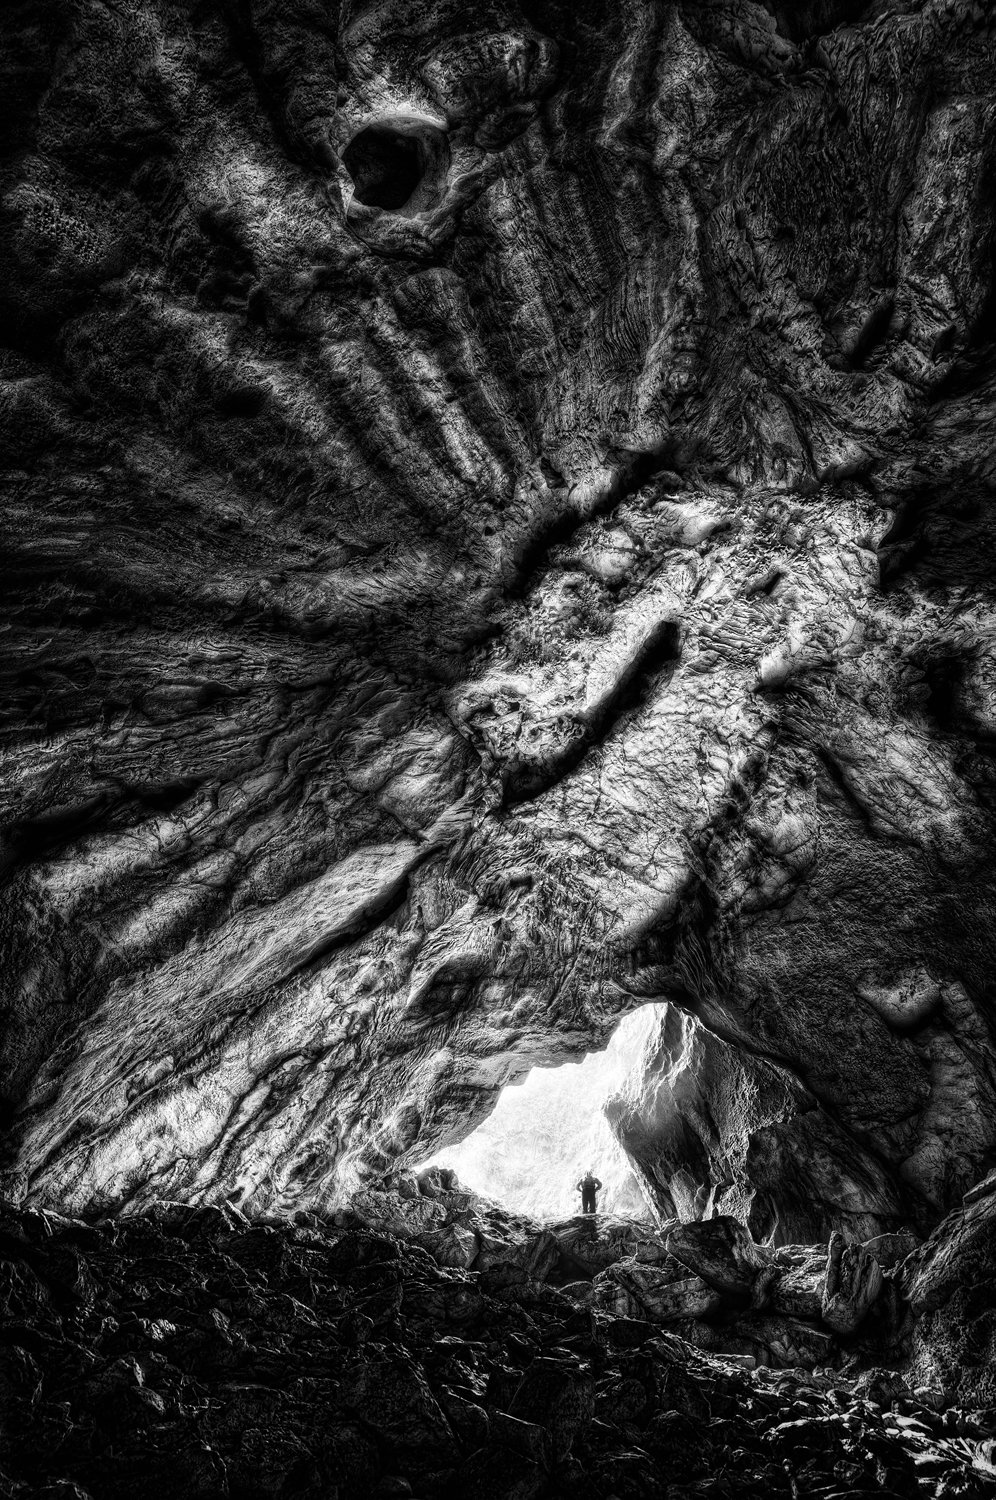 Organic Shapes In The Cave Near City Of Split Croatia Smithsonian Photo Contest Smithsonian Magazine